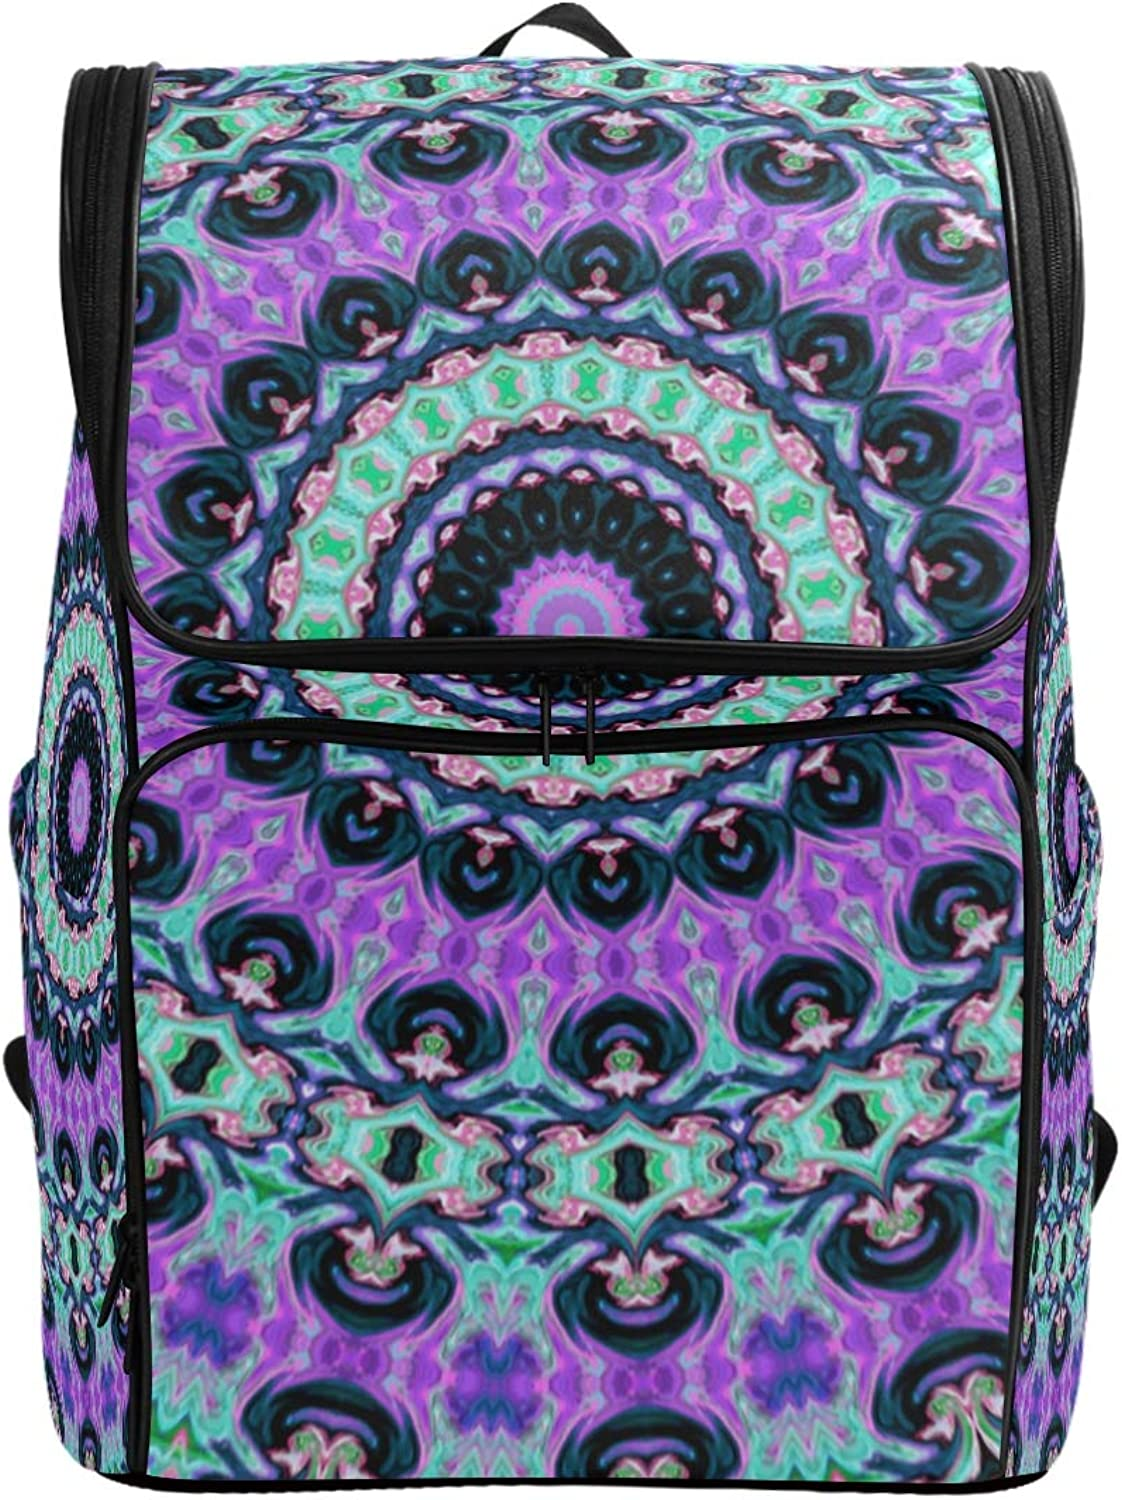 FANTAZIO Abstract Art colorful Floral Laptop Outdoor Backpack Travel Hiking Camping Rucksack Pack, Casual Large College School Daypack